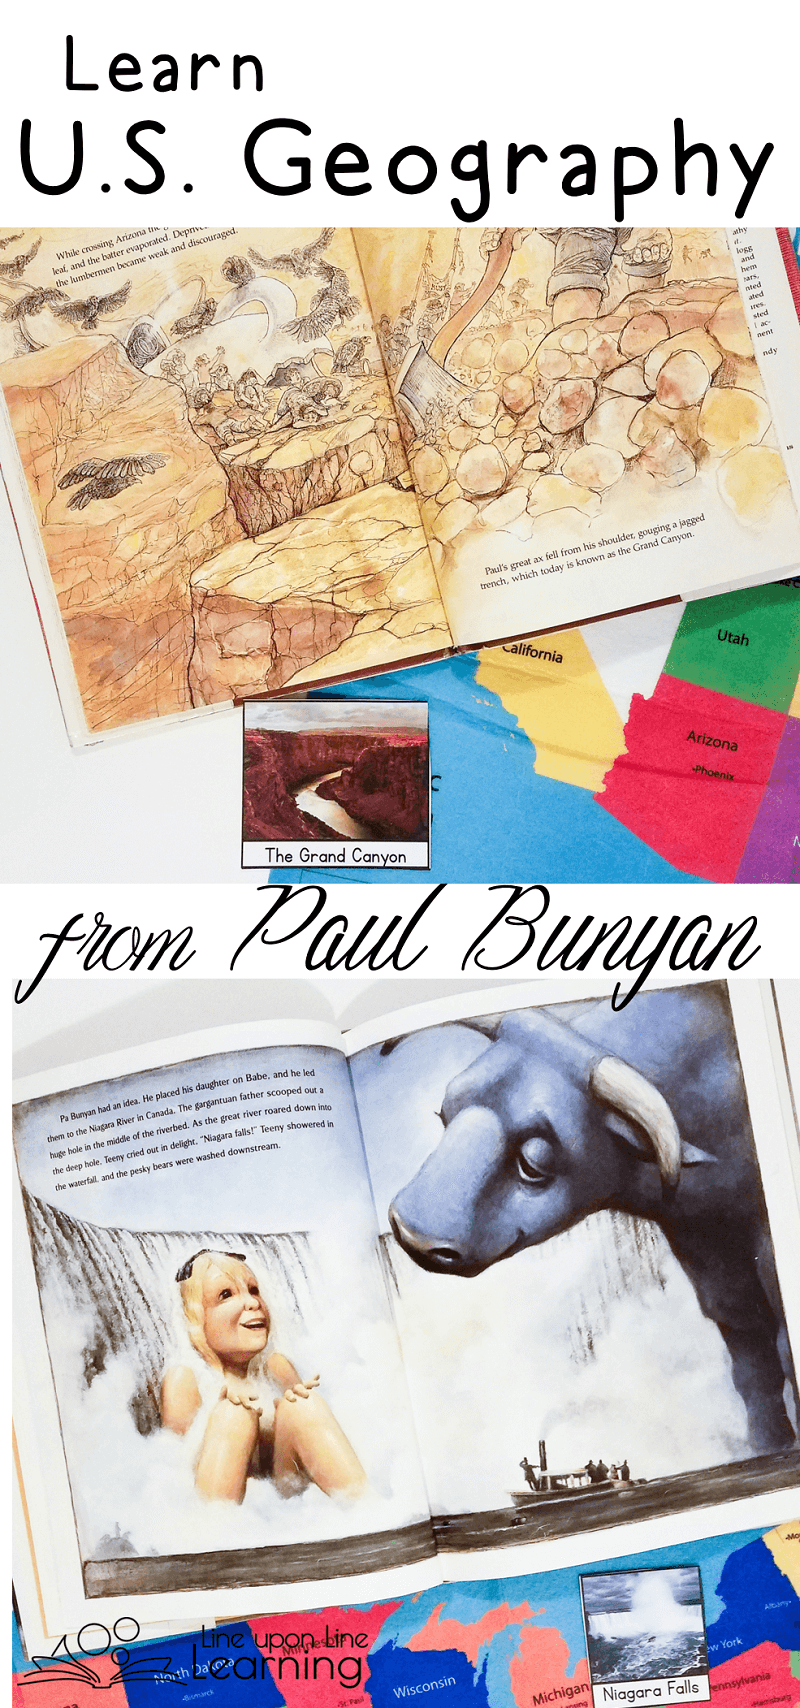 A Introduction to U.S. Geography Inspired by Paul Bunyan | Pinterest